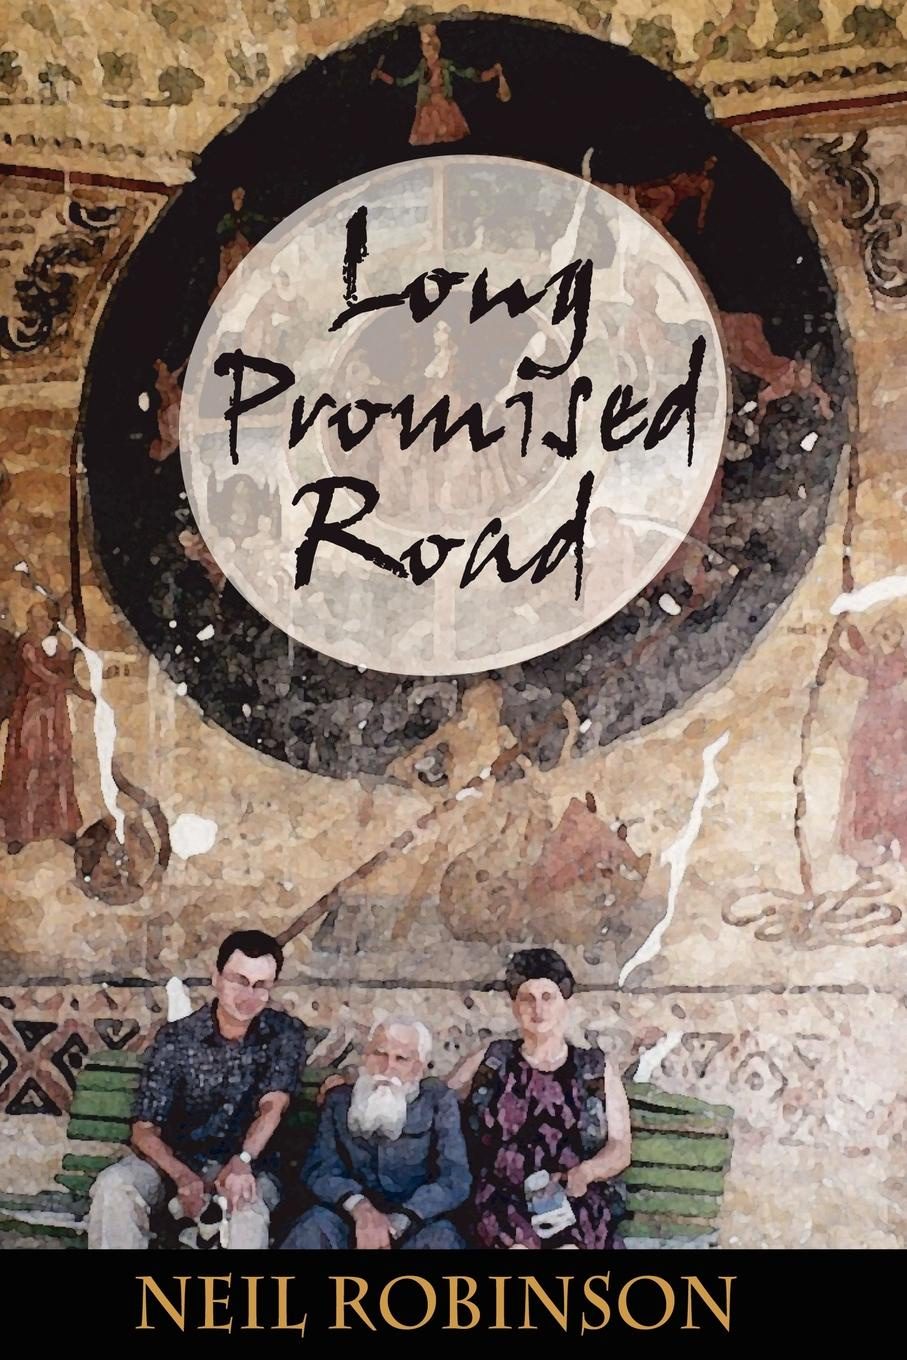 Neil Robinson Long Promised Road